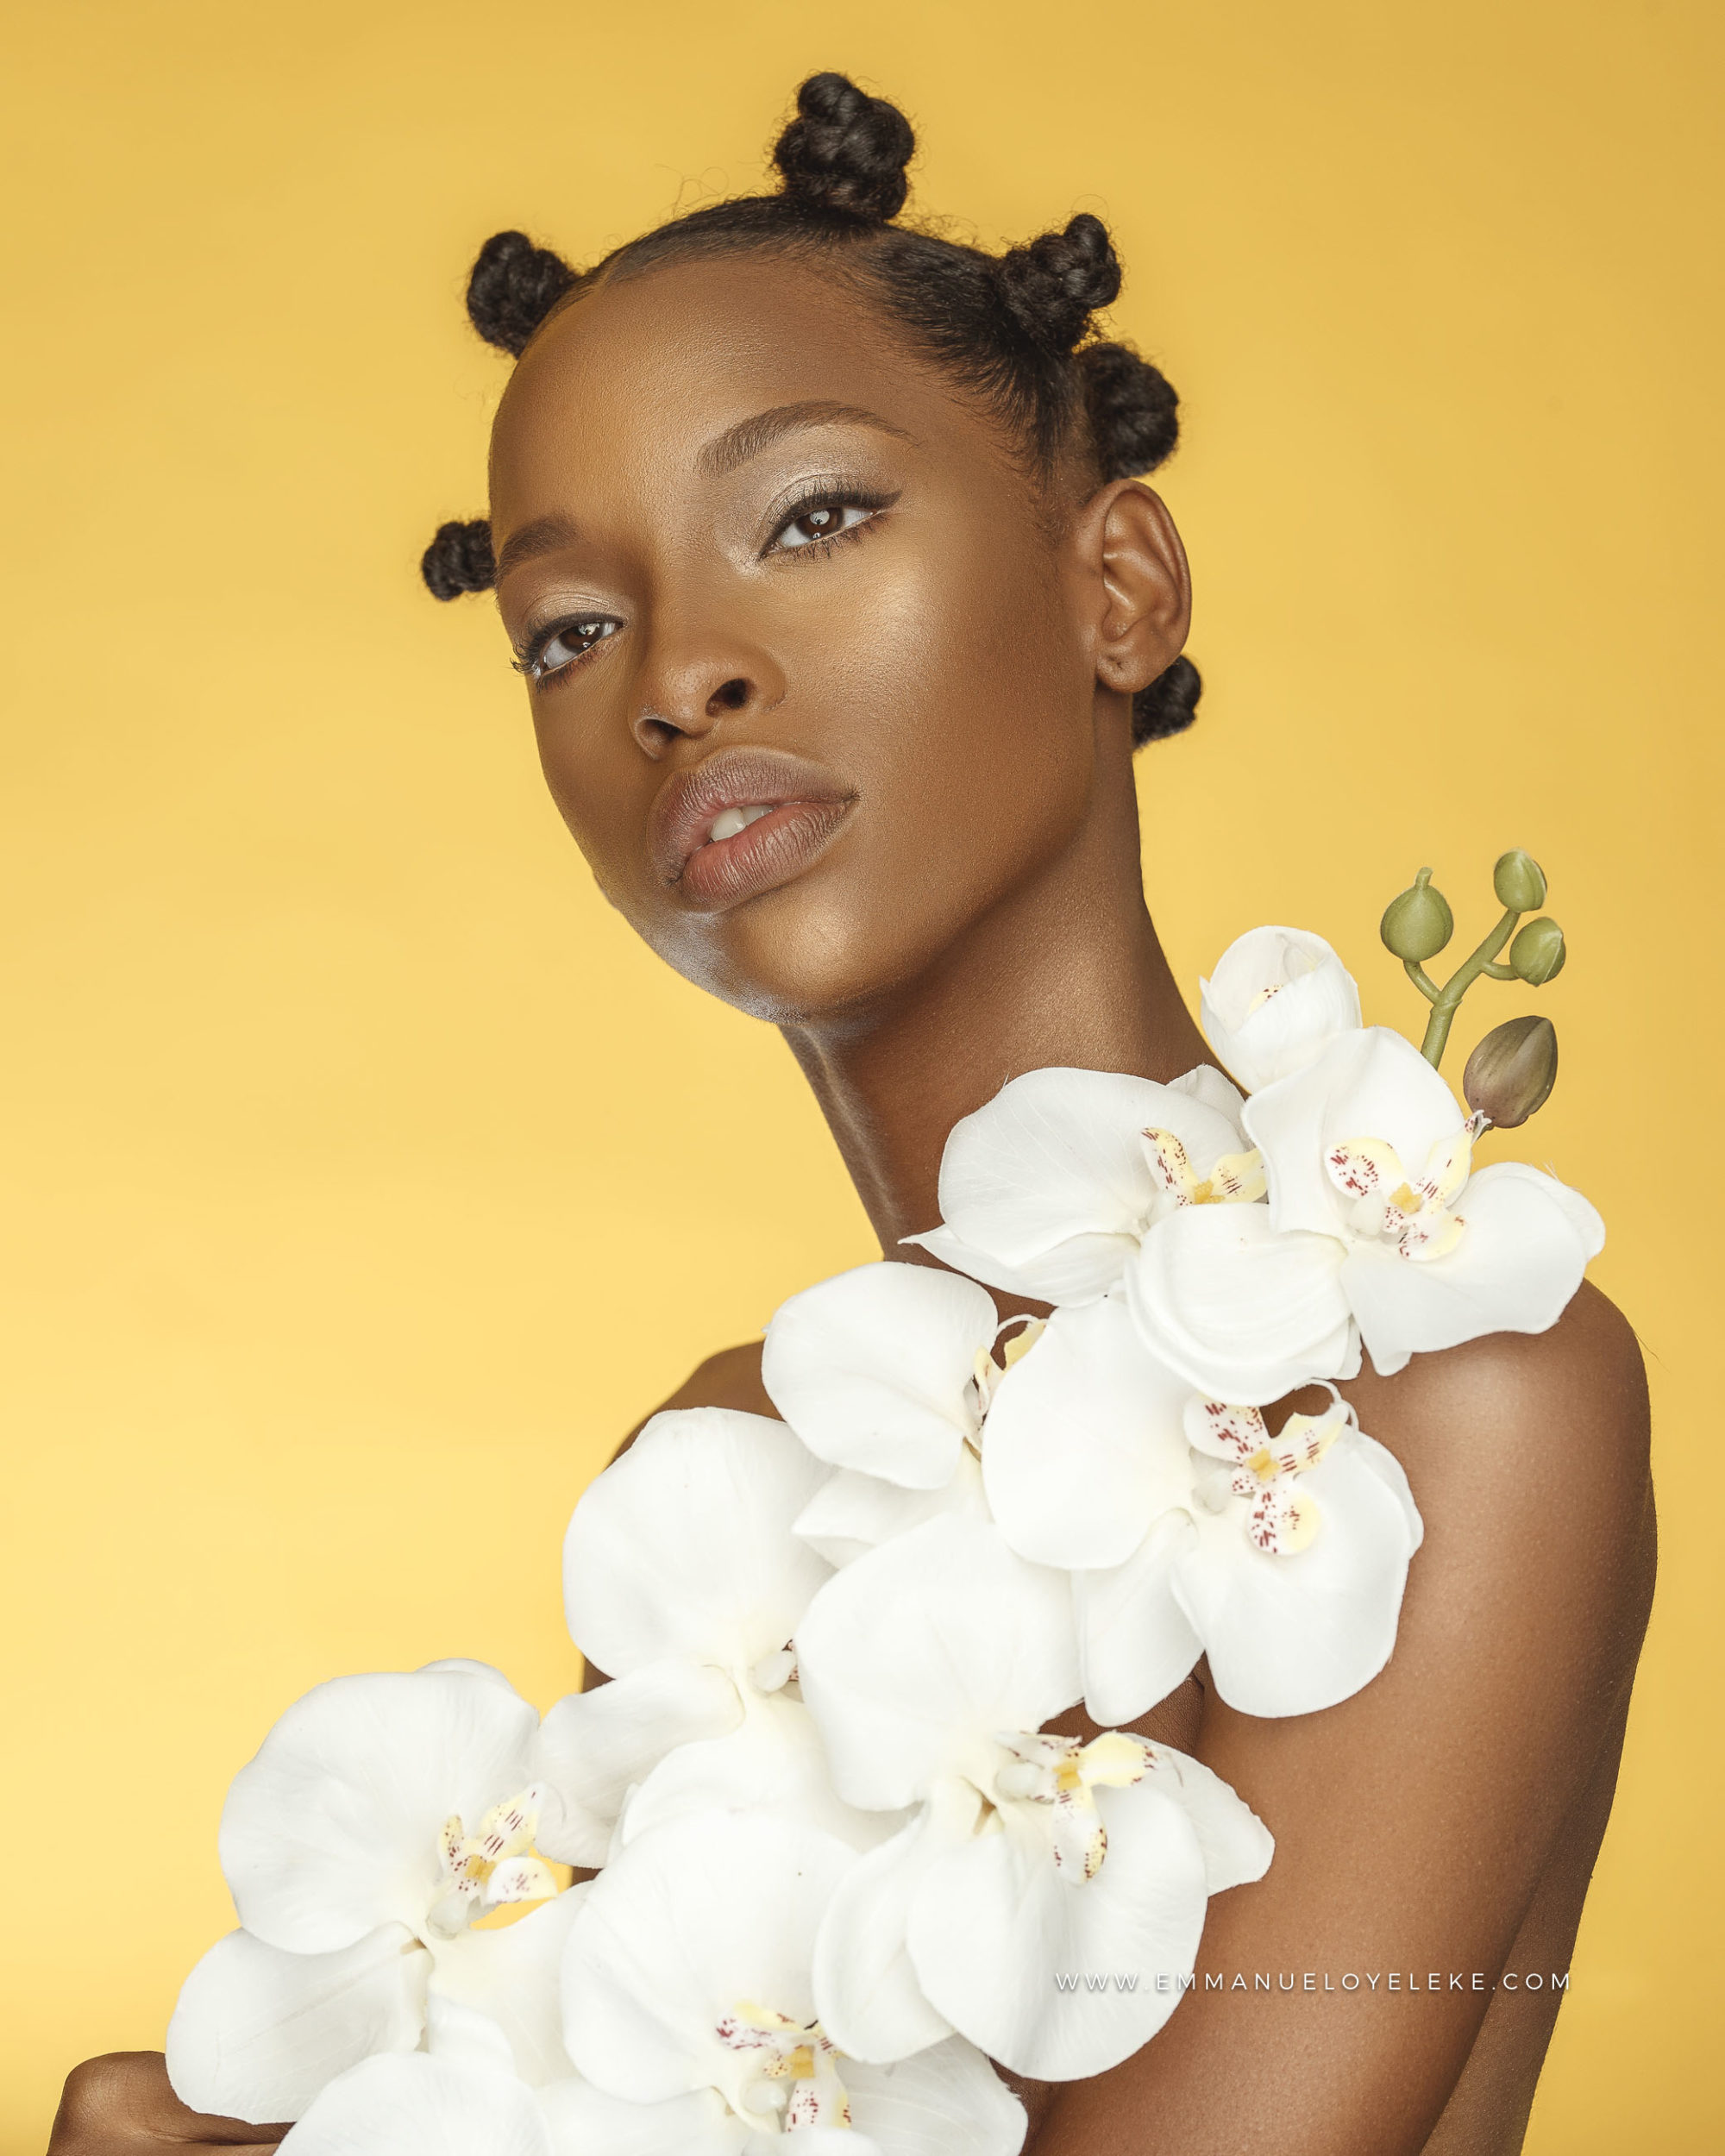 Orchids Puh-lease! You'll Love this Blooming Beauty Shoot